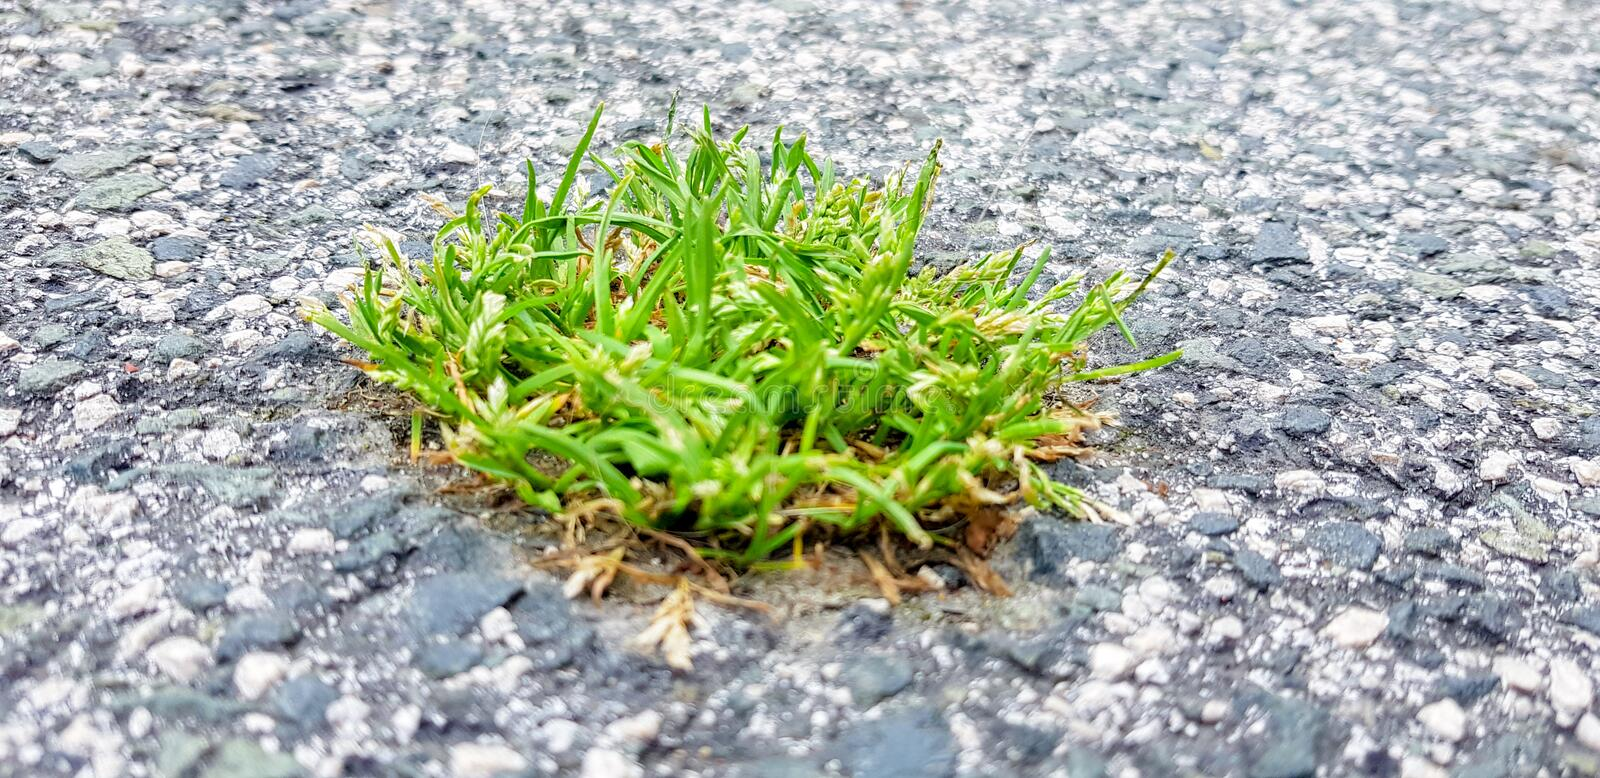 A piece of grass is born in the asphalt. An image that symbolises the power of nature over the city. Green, broken, closeup, plant, growth, street, rough stock photography